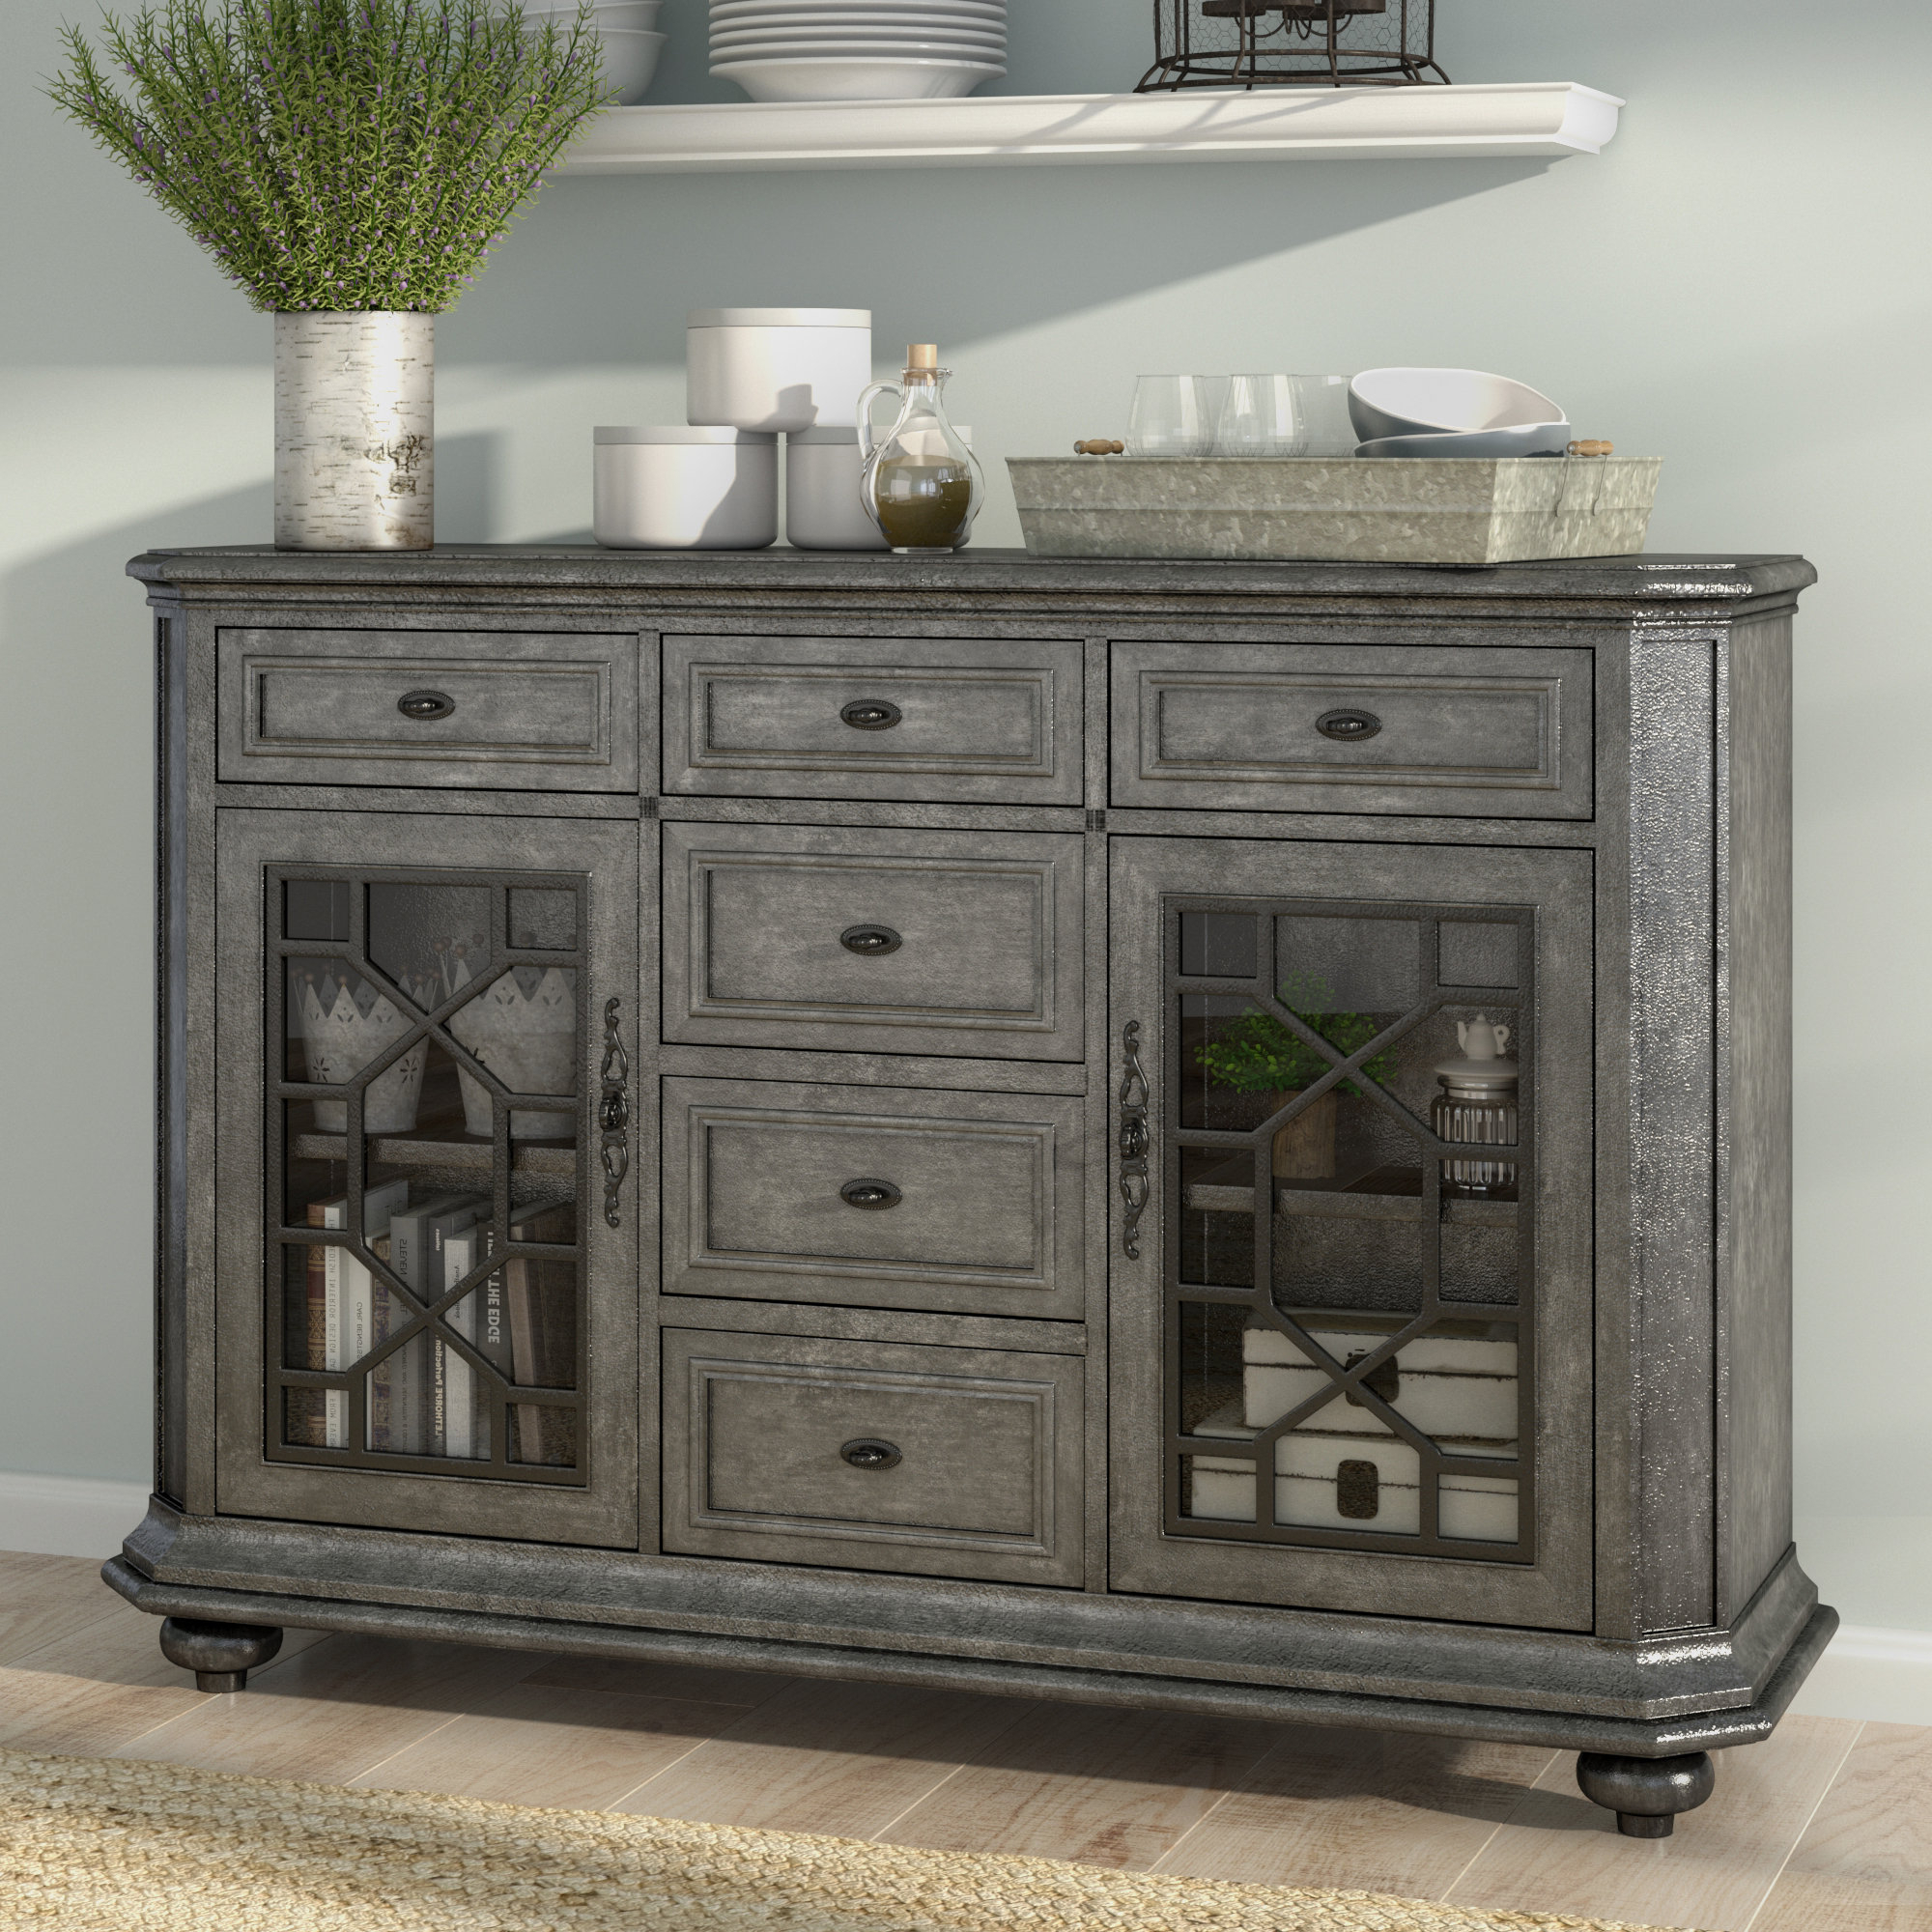 Fashionable Kratz Sideboard For Chicoree Charlena Sideboards (View 11 of 20)